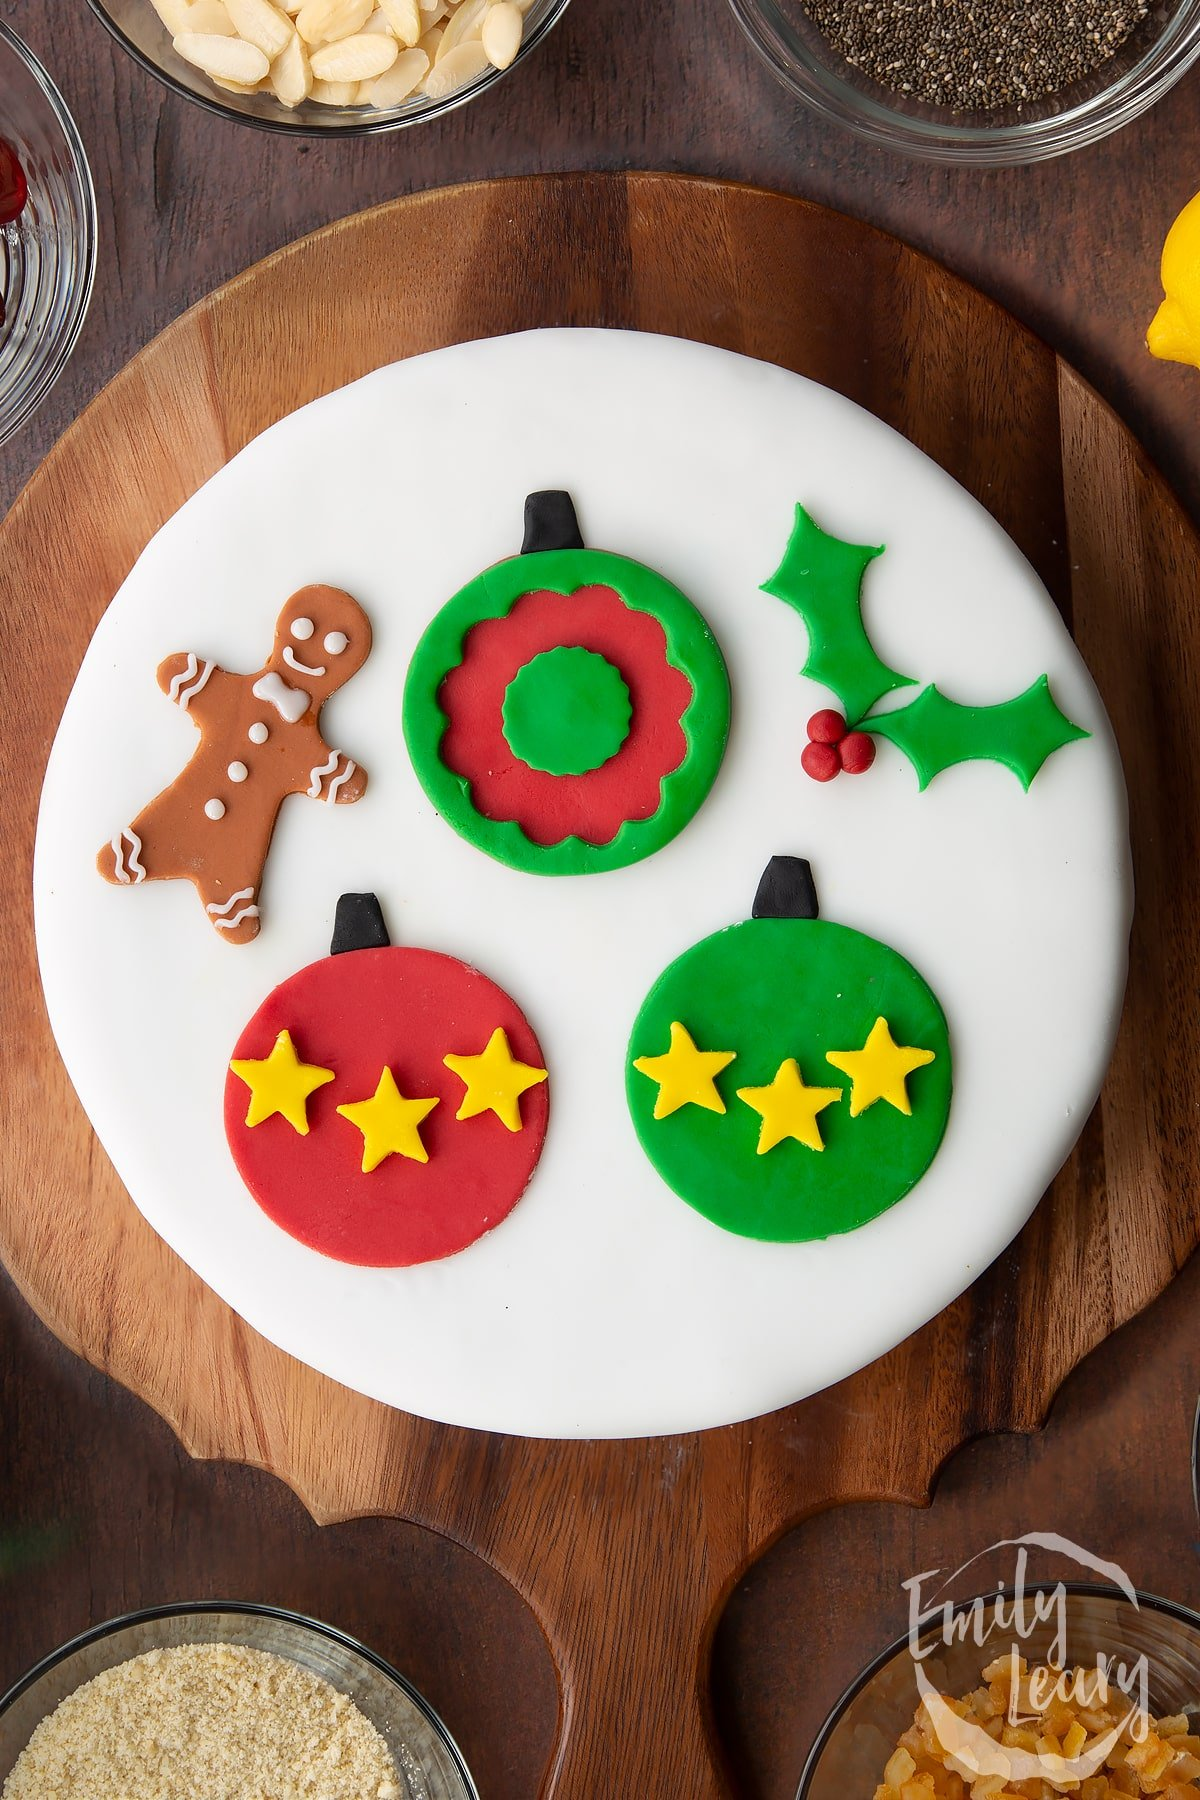 Vegan Christmas cake, topped with a disc of marzipan, covered with white sugar paste and decorated with sugar paste decorations (three baubles, a sprig of holly and a little gingerbread man).